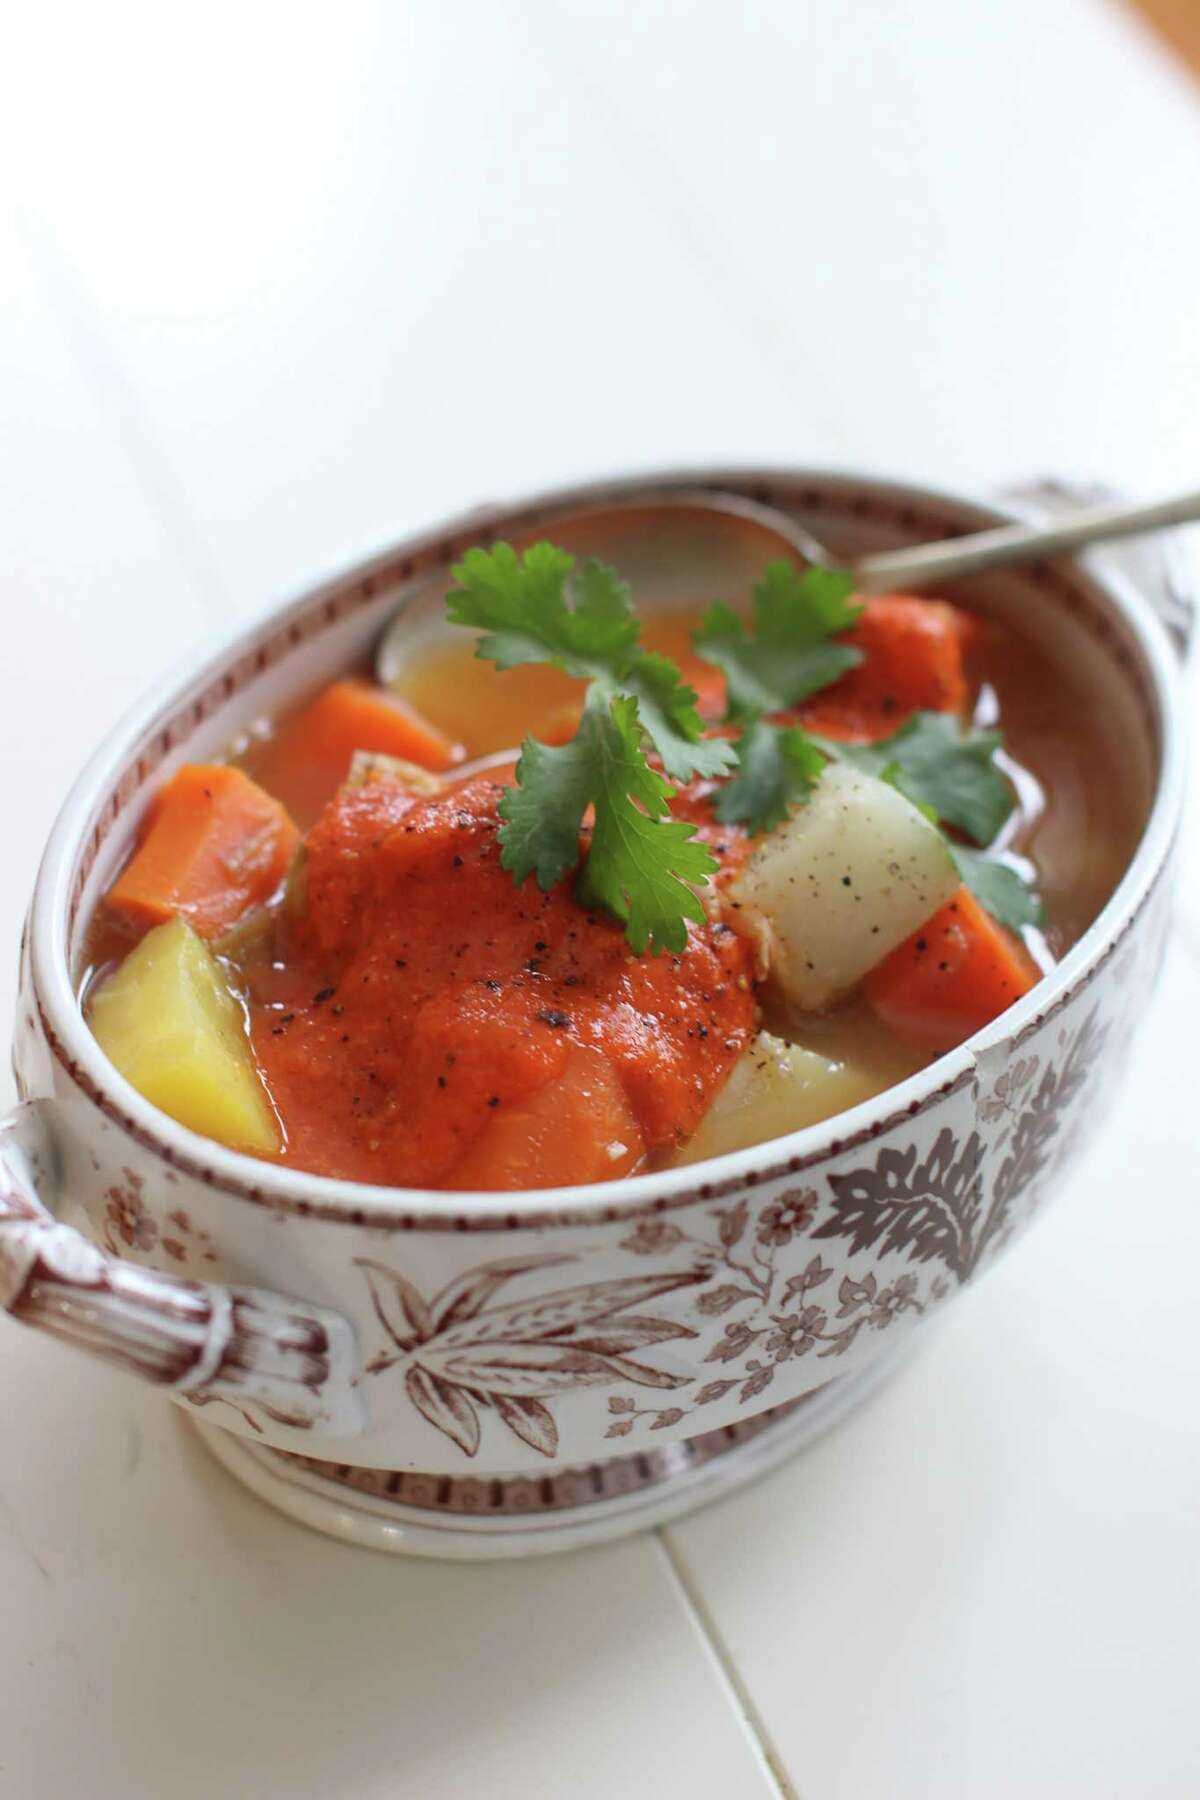 This Dec. 8, 2014 photo shows Moroccan chicken in a pot with harissa in Concord, N.H. (AP Photo/Matthew Mead) ORG XMIT: MER2014122610254002